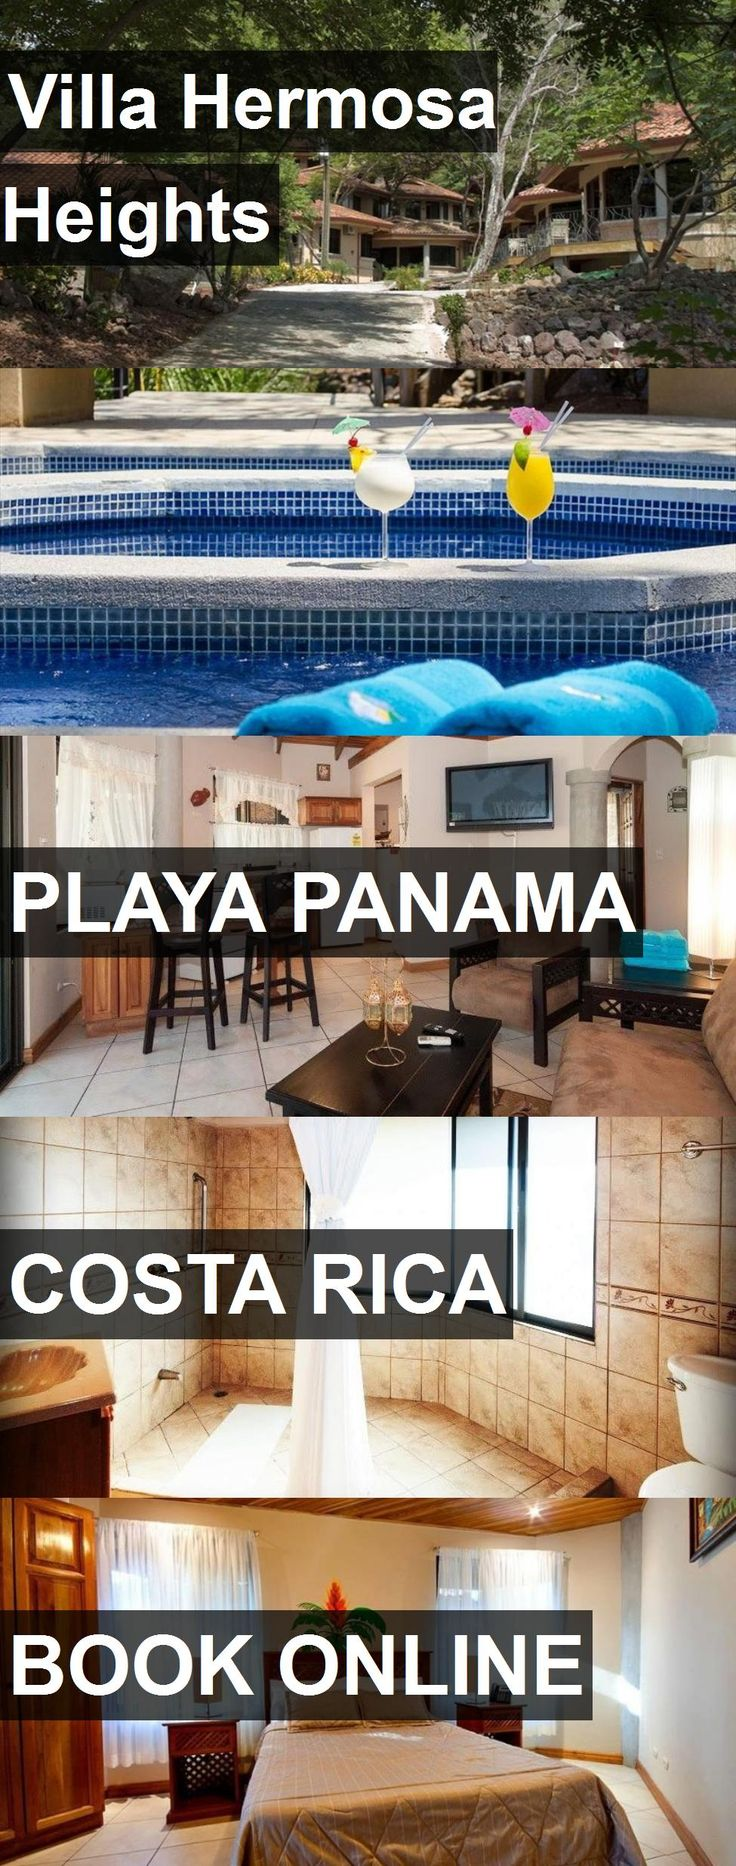 Hotel Villa Hermosa Heights in Playa Panama, Costa Rica. For more information, photos, reviews and best prices please follow the link. #CostaRica #PlayaPanama #VillaHermosaHeights #hotel #travel #vacation